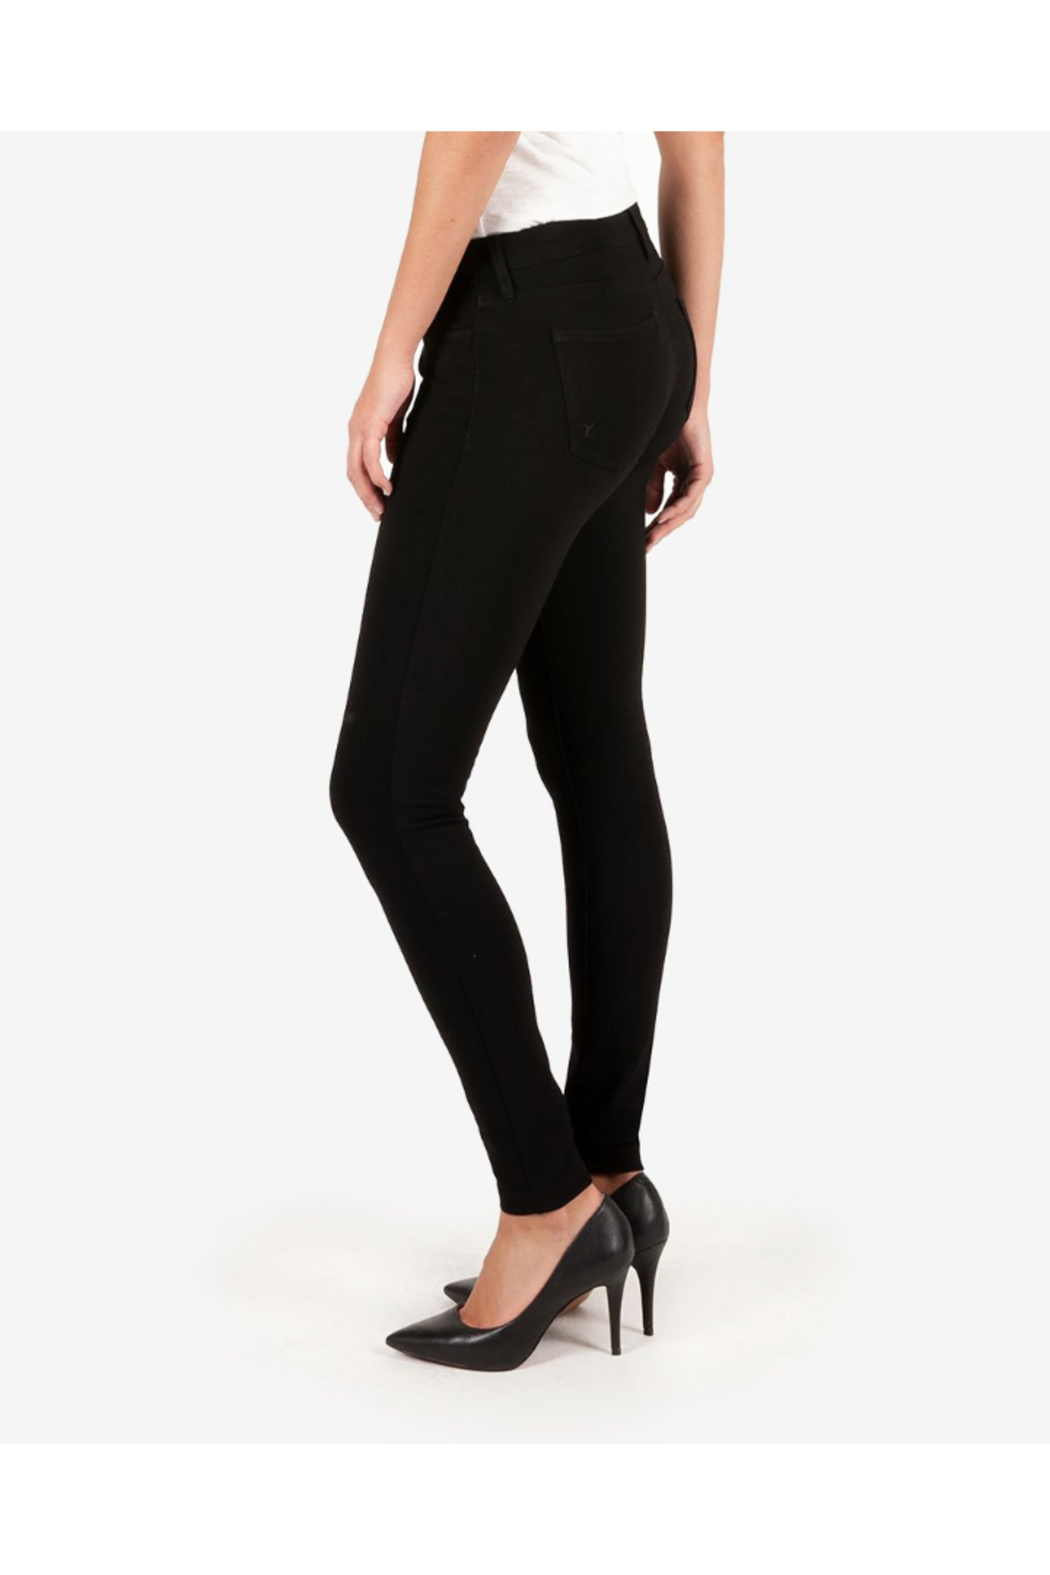 Kut from the Kloth MIA PONTE SLIM FIT SKINNY - Front Full Image